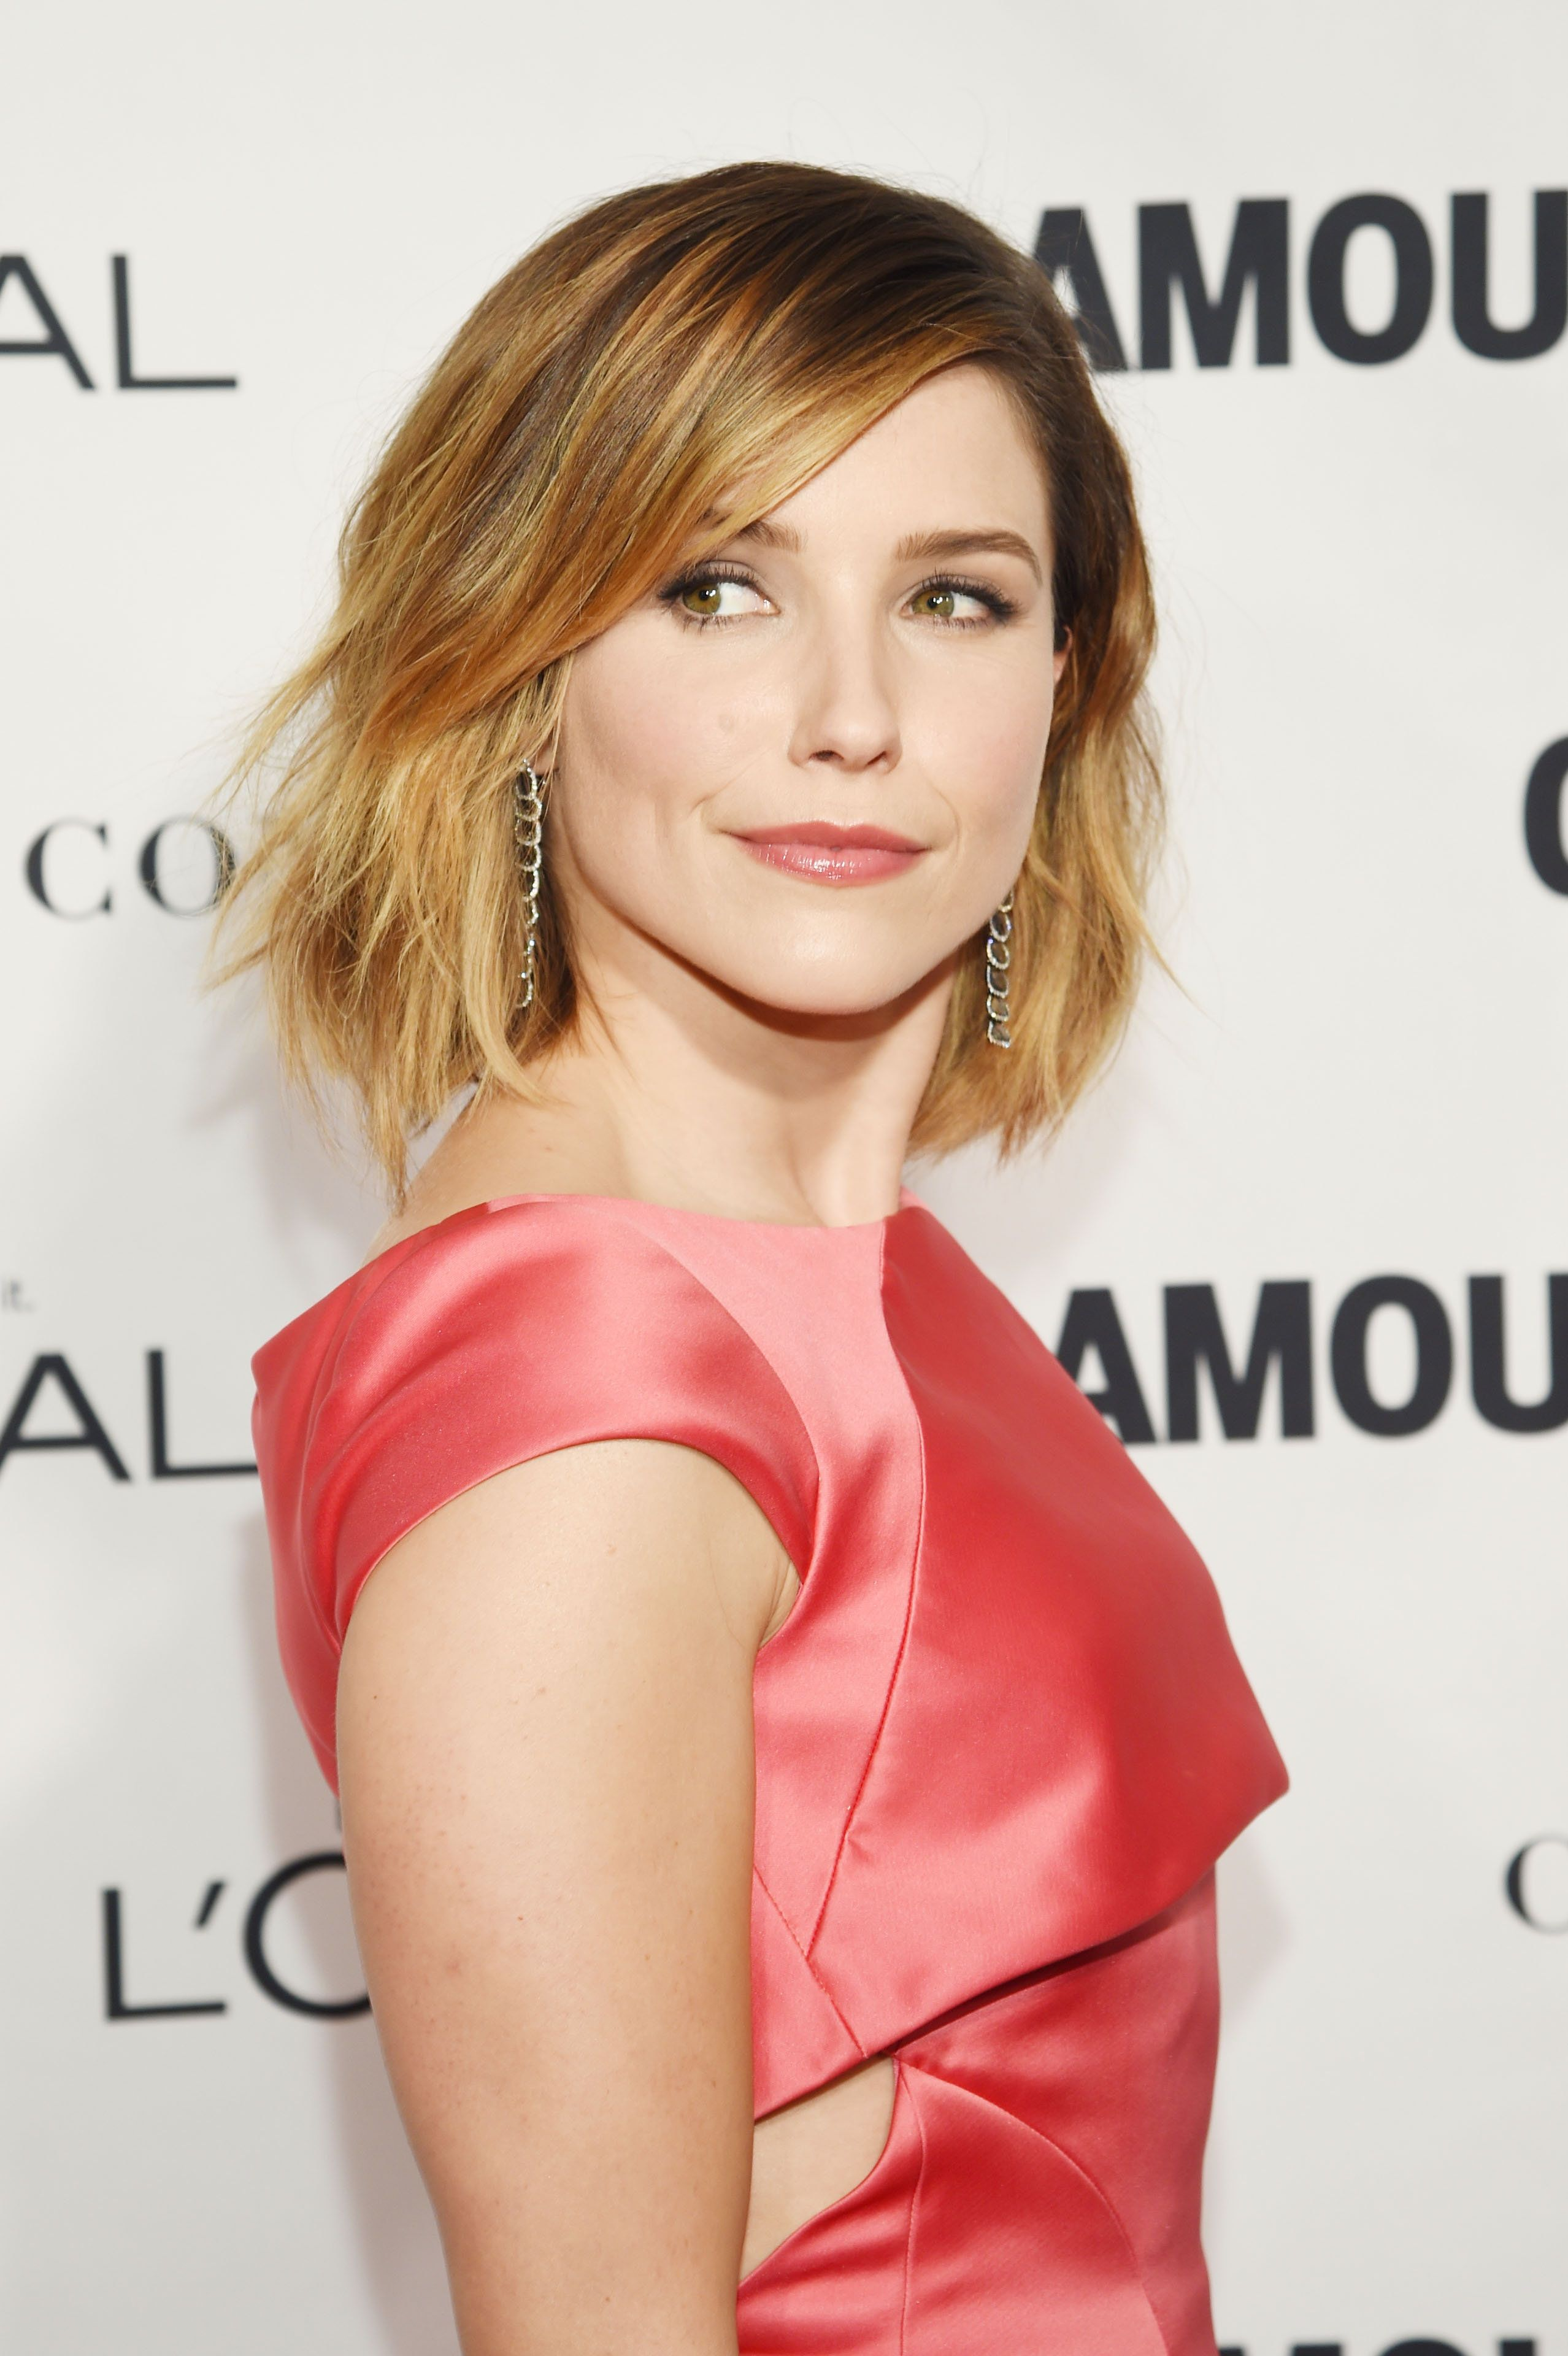 NEW YORK, NY - NOVEMBER 09:  Actress Sophia Bush attends 2015 Glamour Women Of The Year Awards at Carnegie Hall on November 9, 2015 in New York City.  (Photo by Dimitrios Kambouris/Getty Images for Glamour)